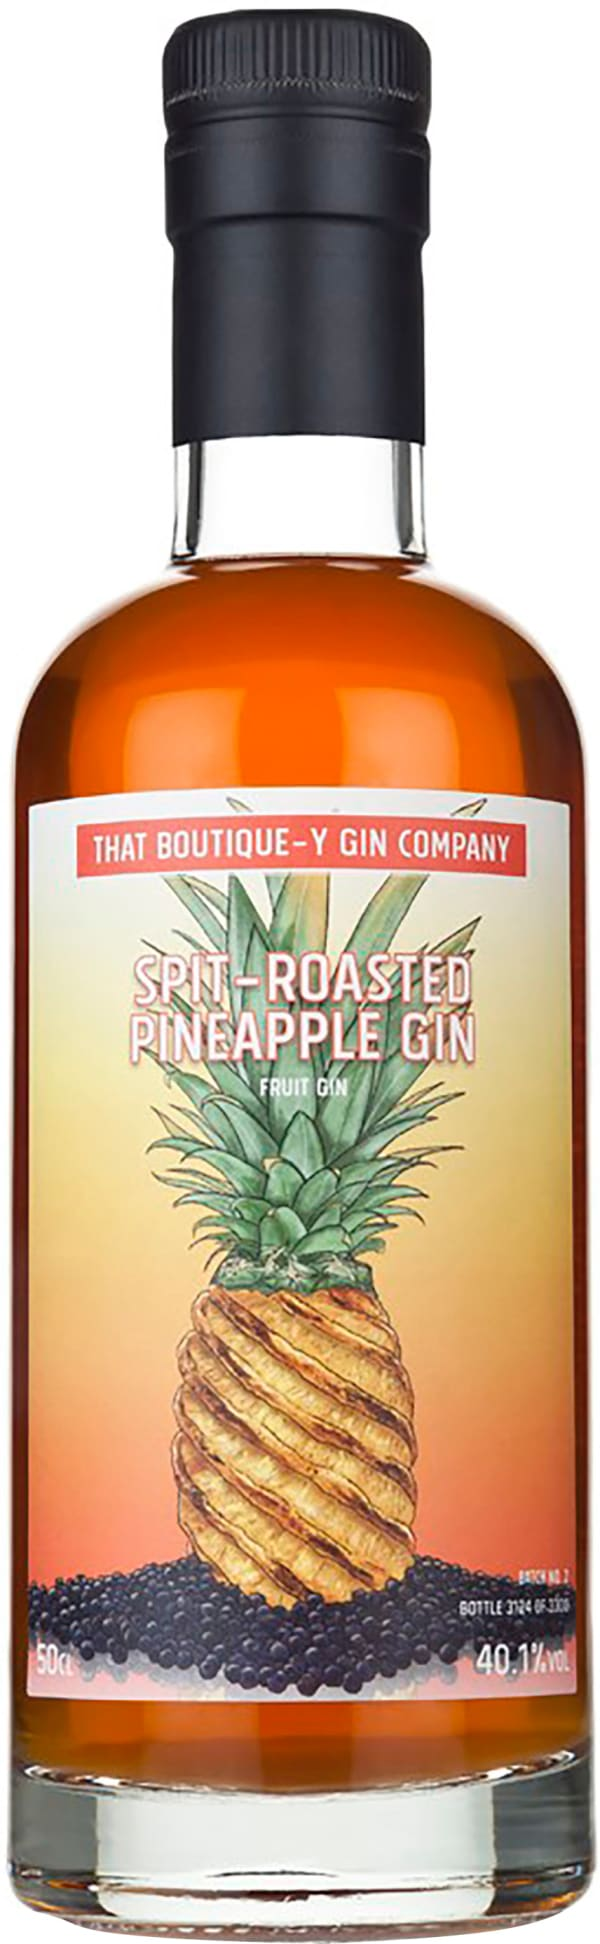 That Boutique-y Gin Company Spit-Roasted Pineapple Gin